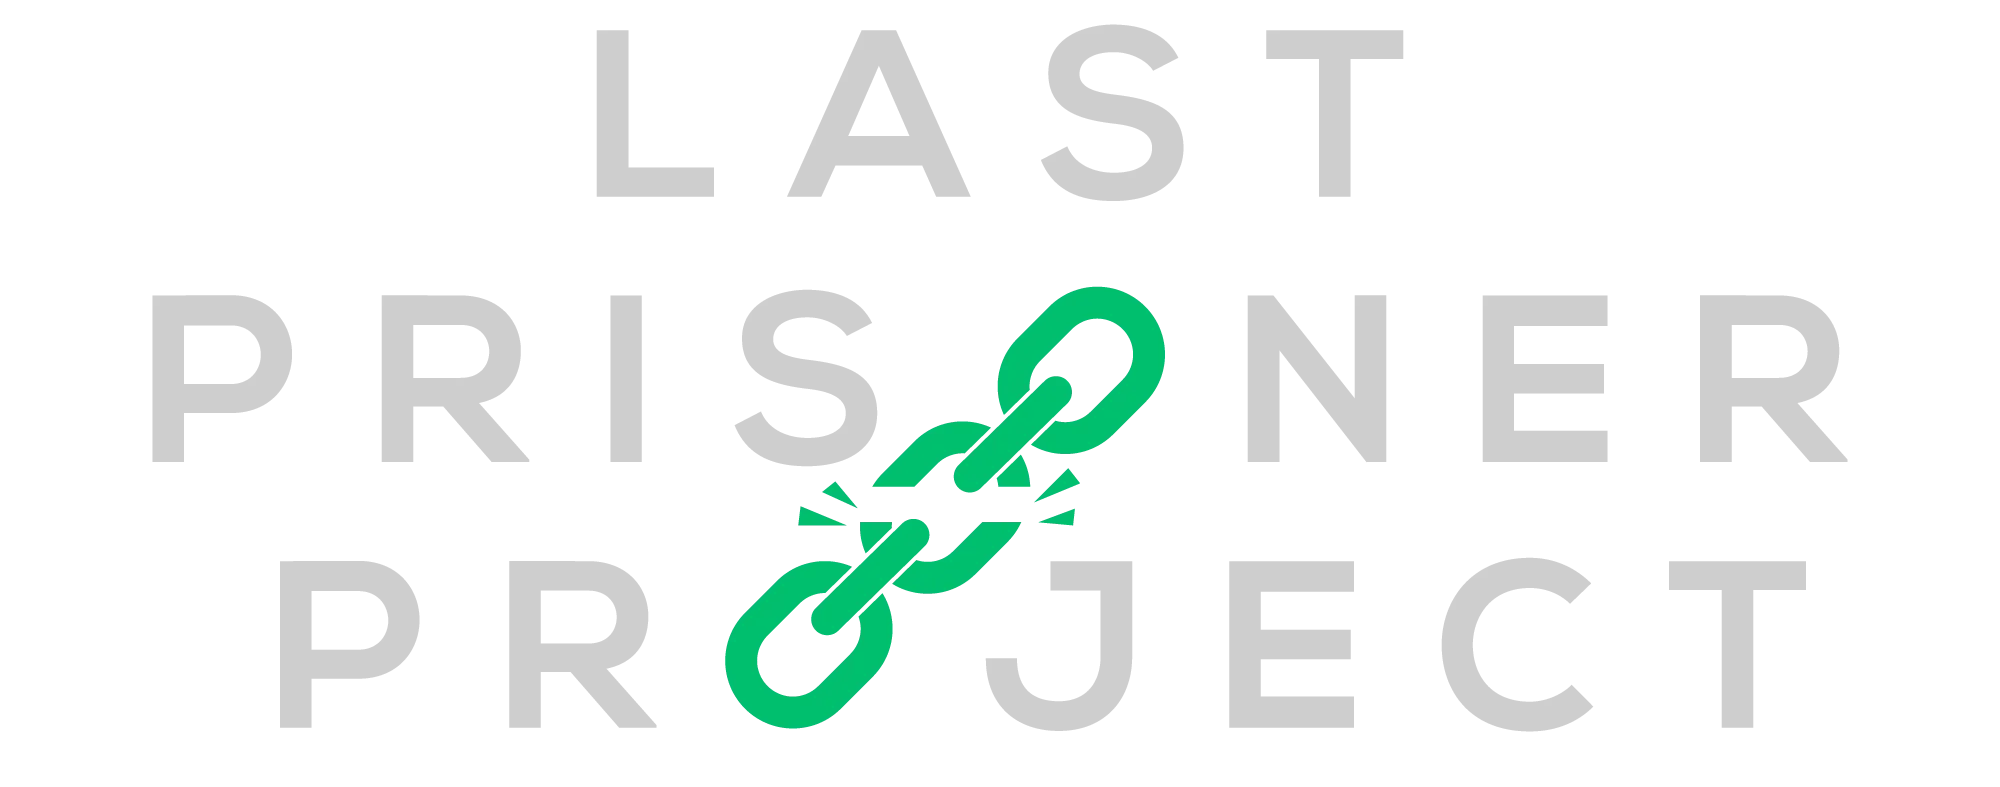 Last Prisoner Project Logo